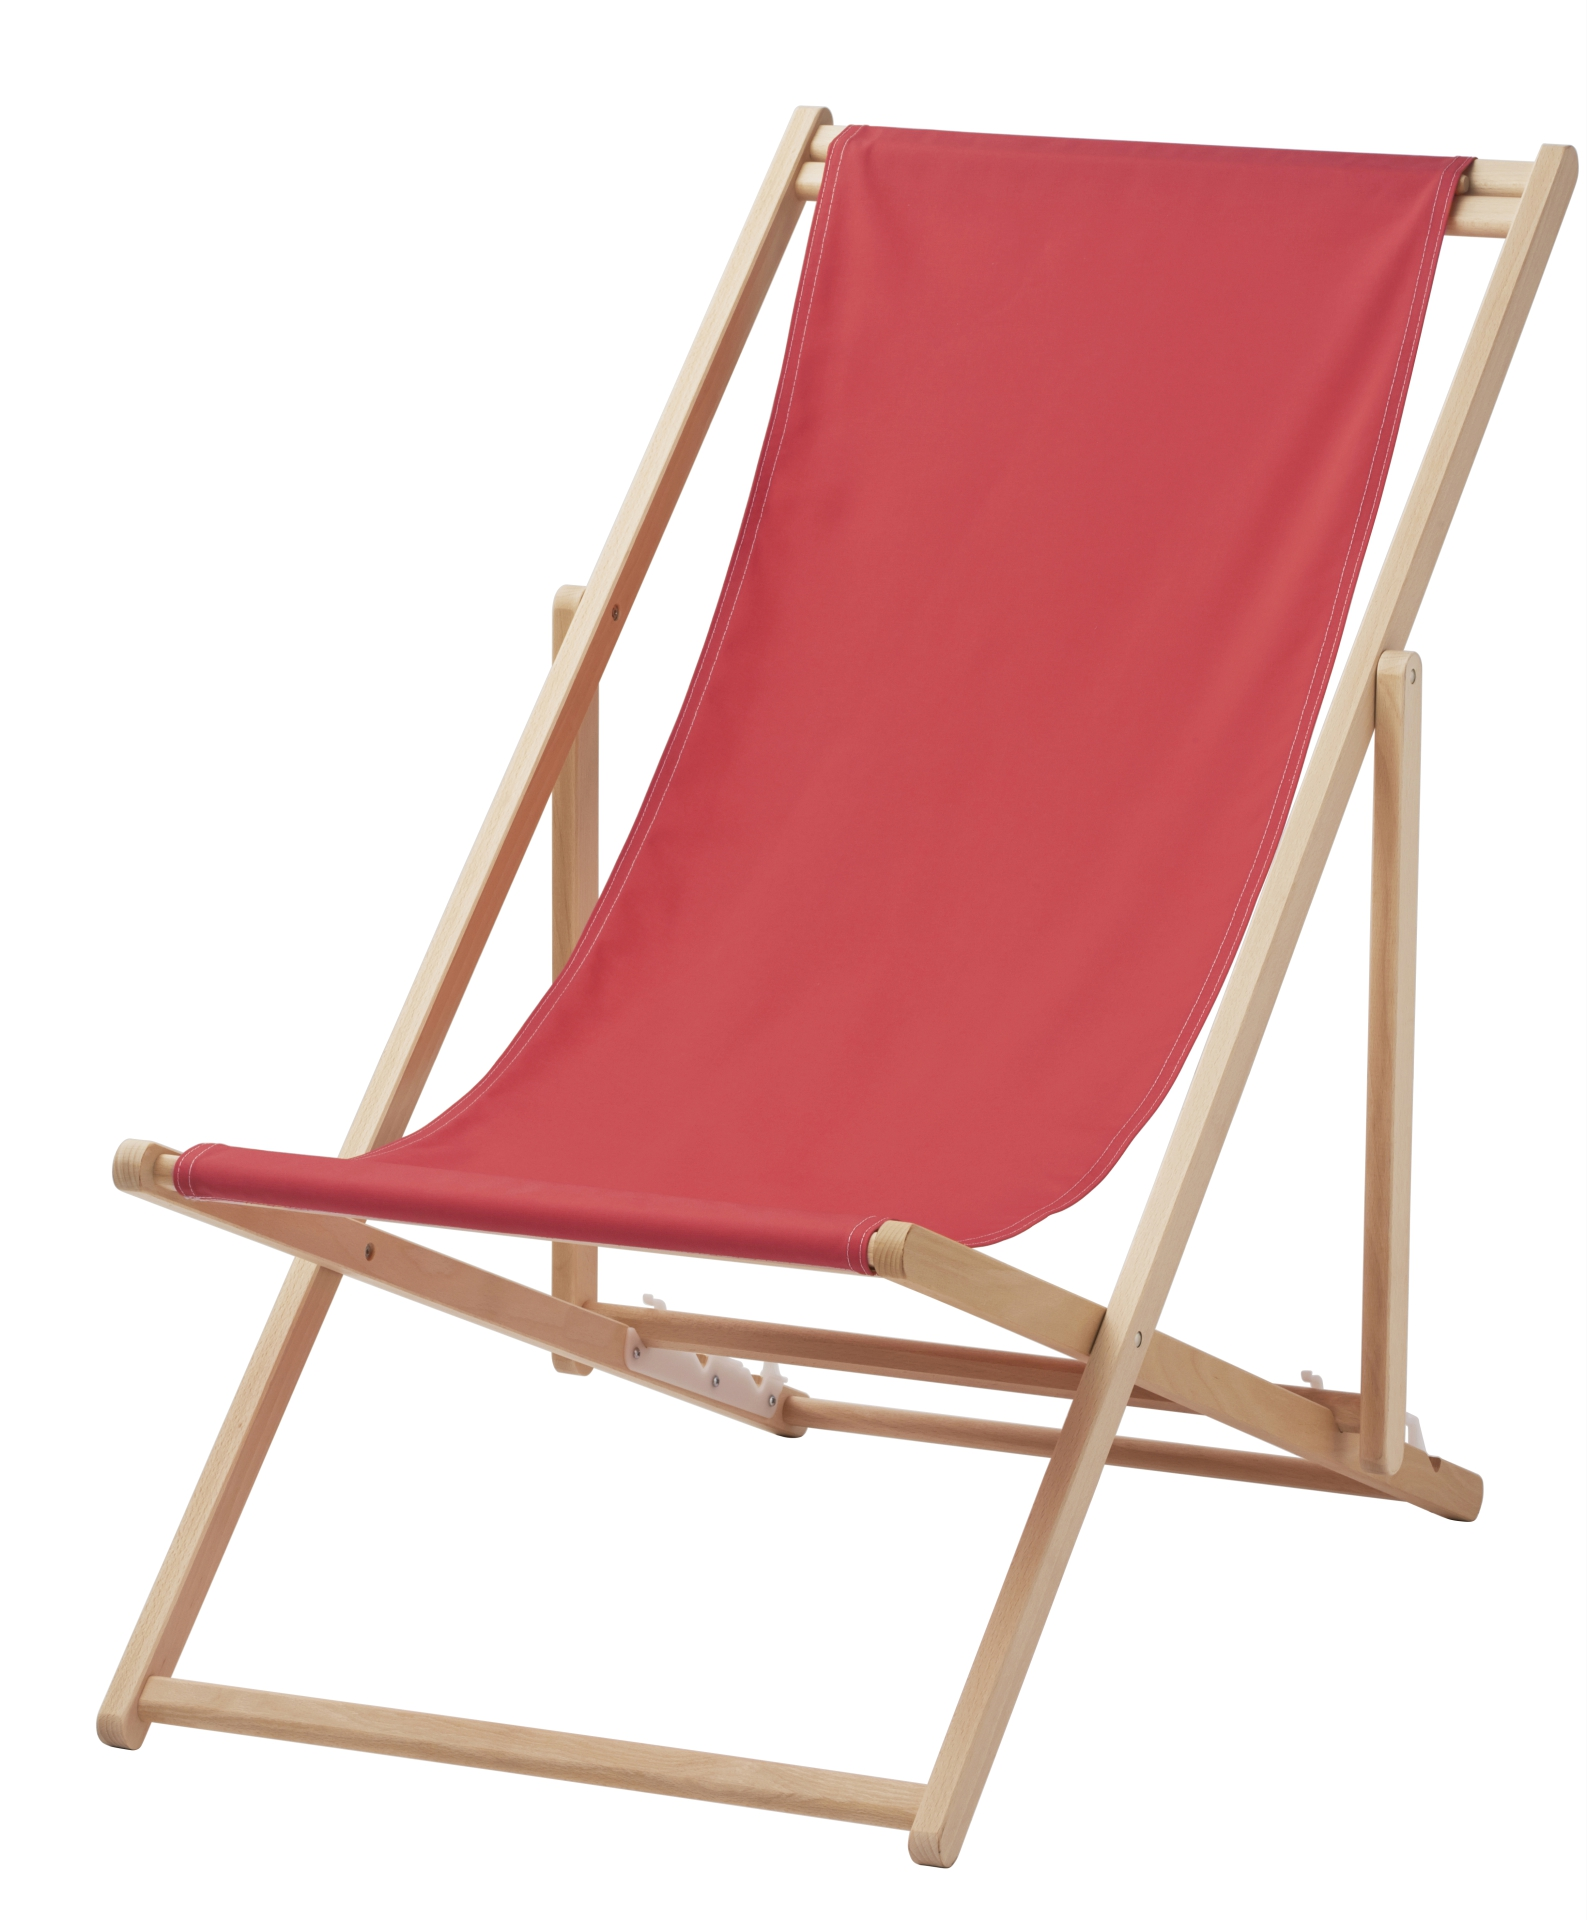 IKEA Recalls Beach Chairs Due to Fall and Fingertip